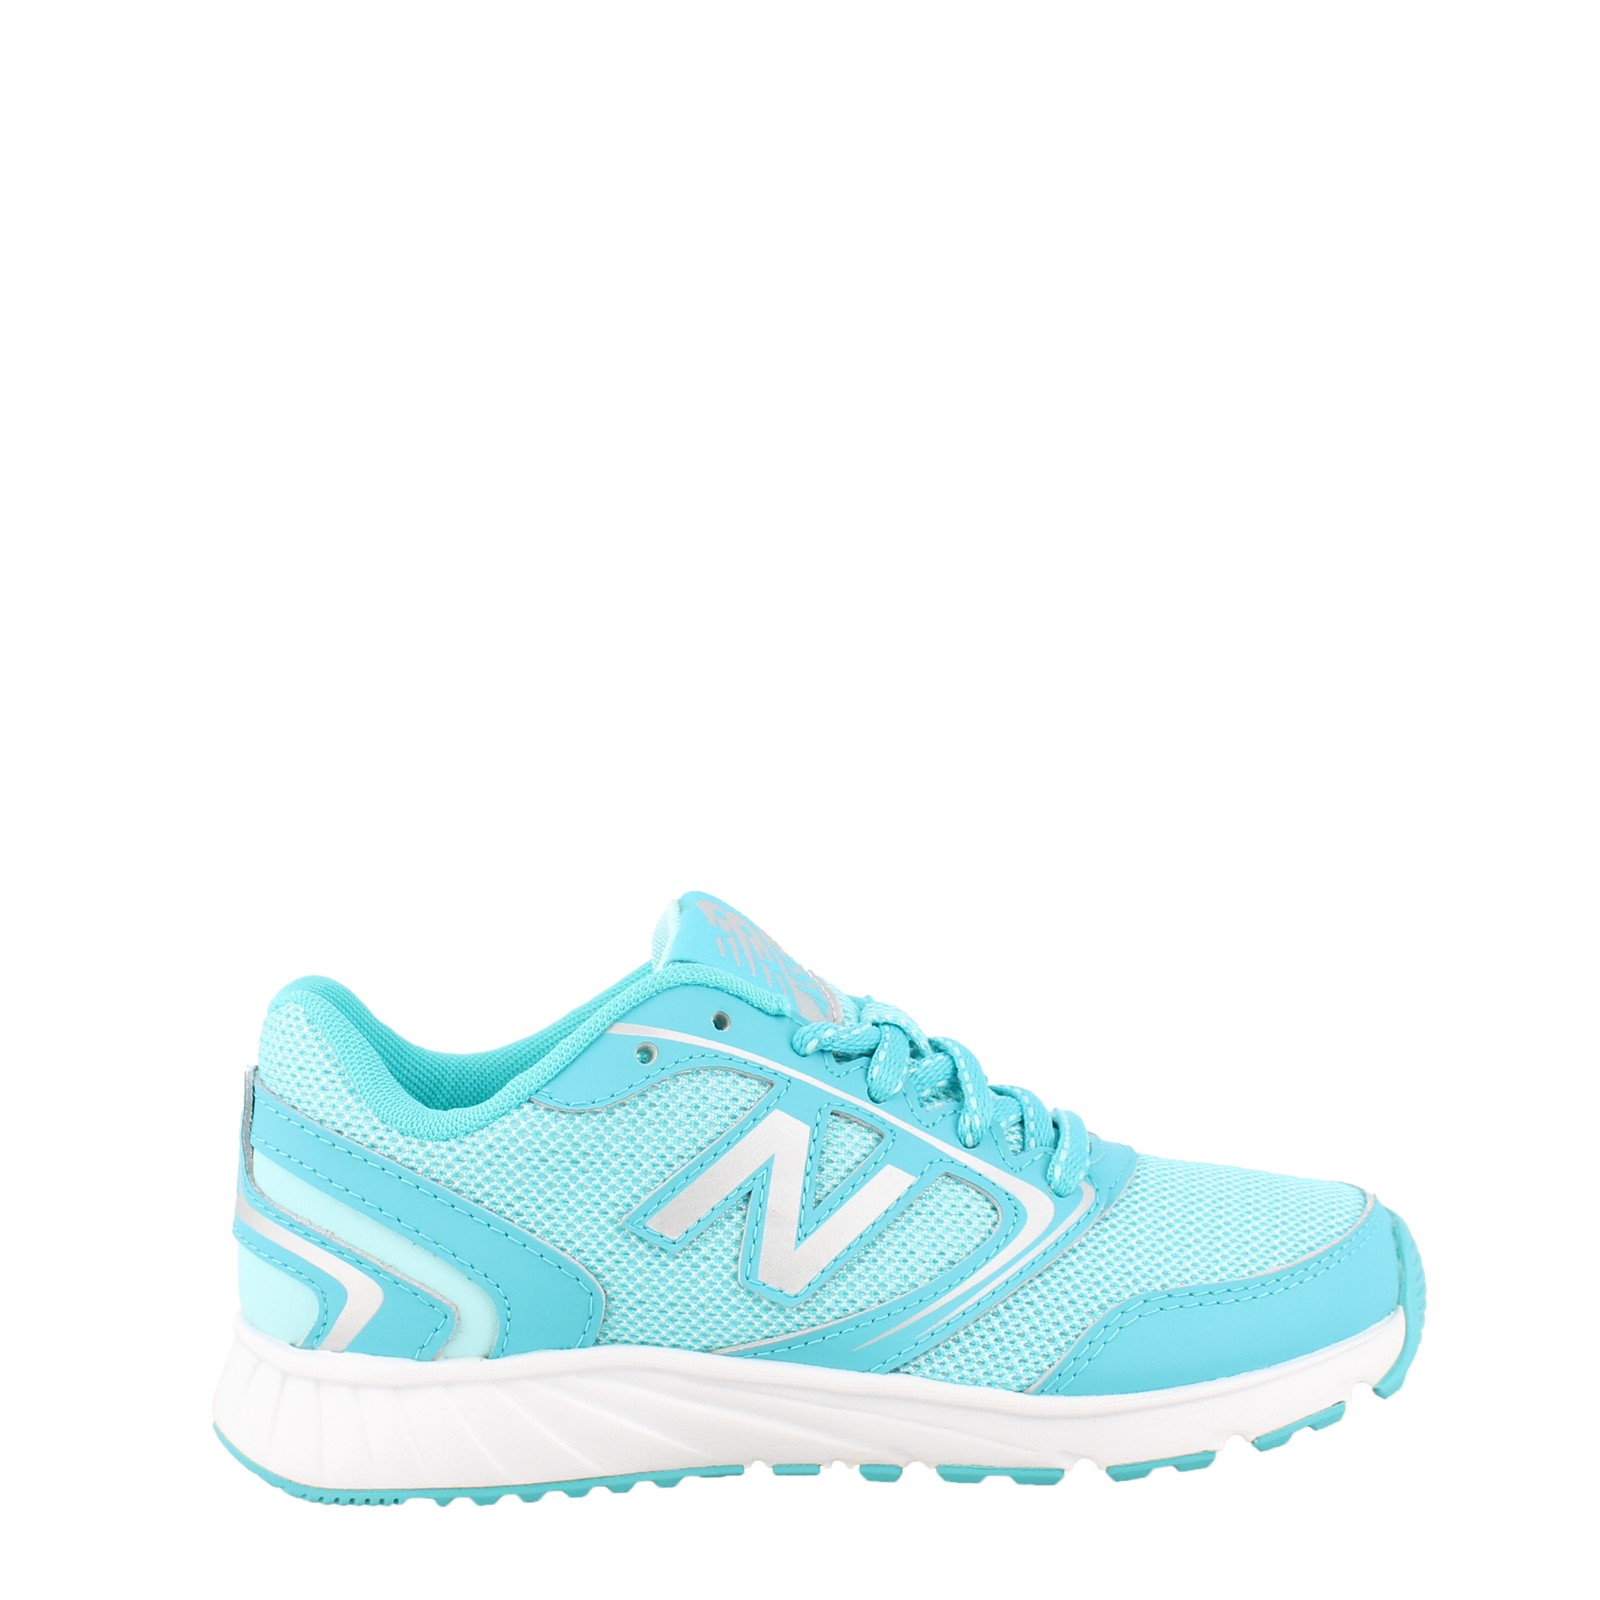 Girl's New Balance, 455 Lace up Sneakers